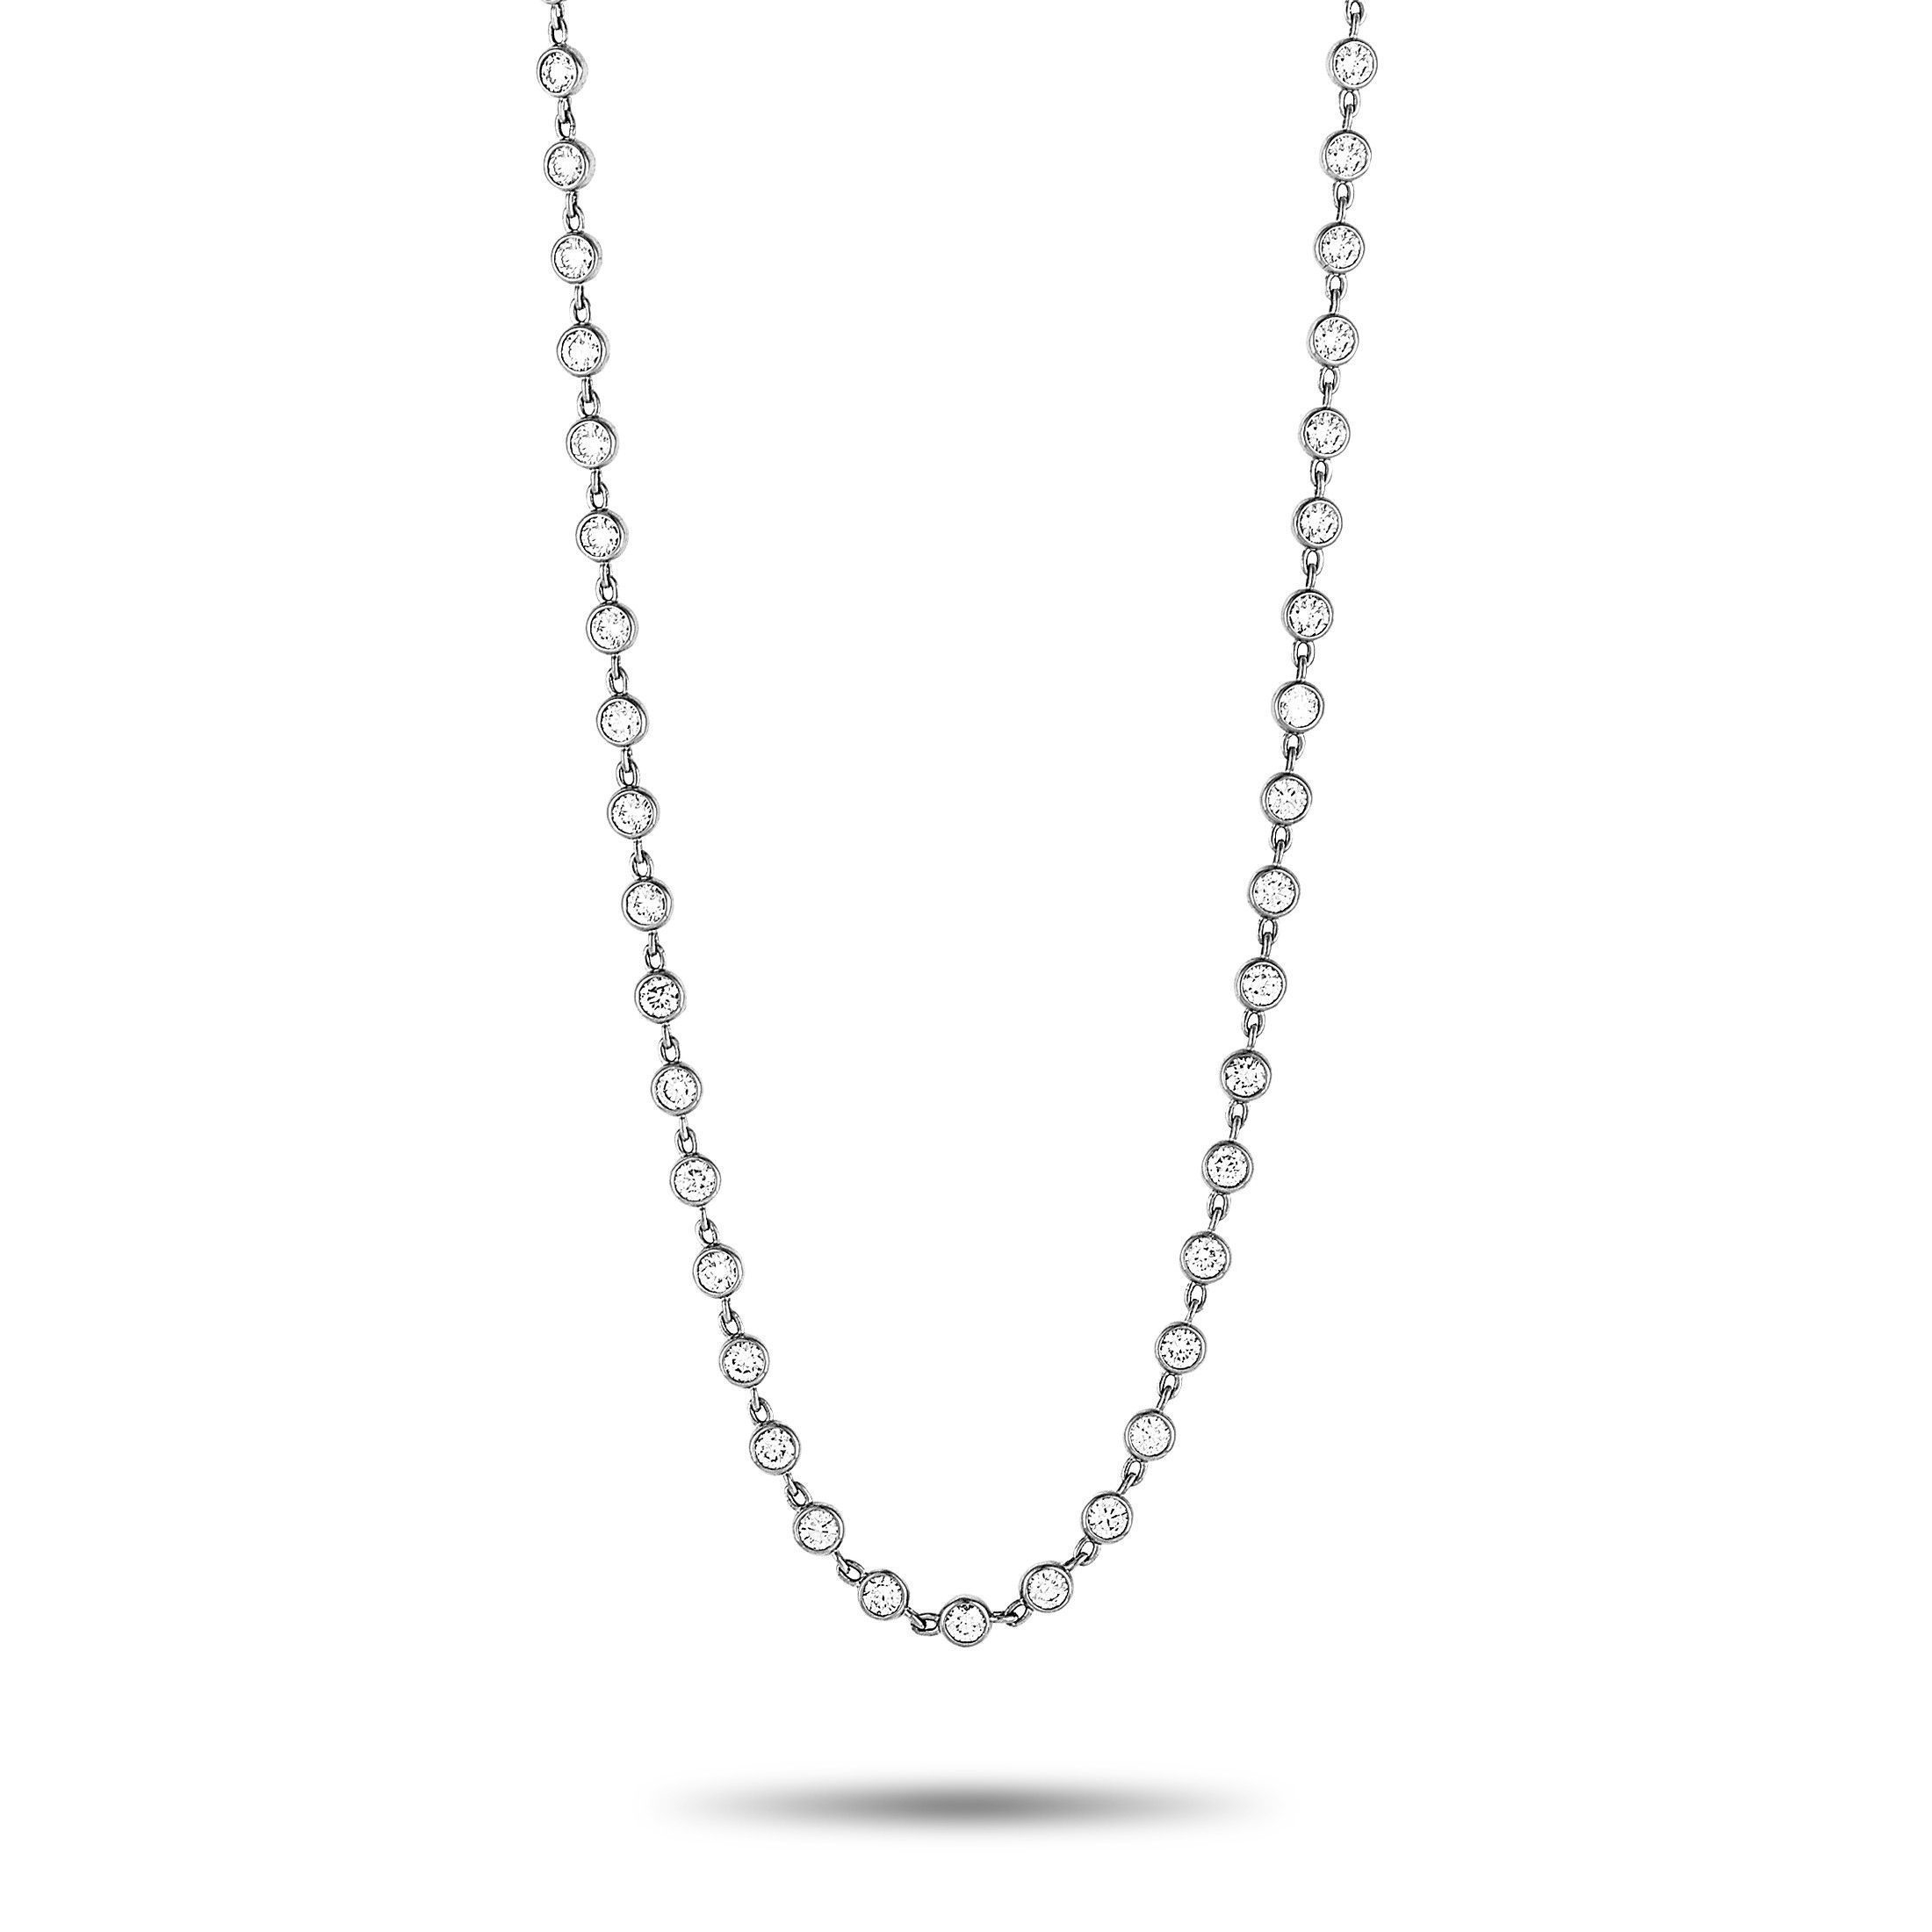 Lb Exclusive 18K White Gold Diamond Sautoir Necklace In Most Up To Date Diamond Sautoir Necklaces In Platinum (View 17 of 25)